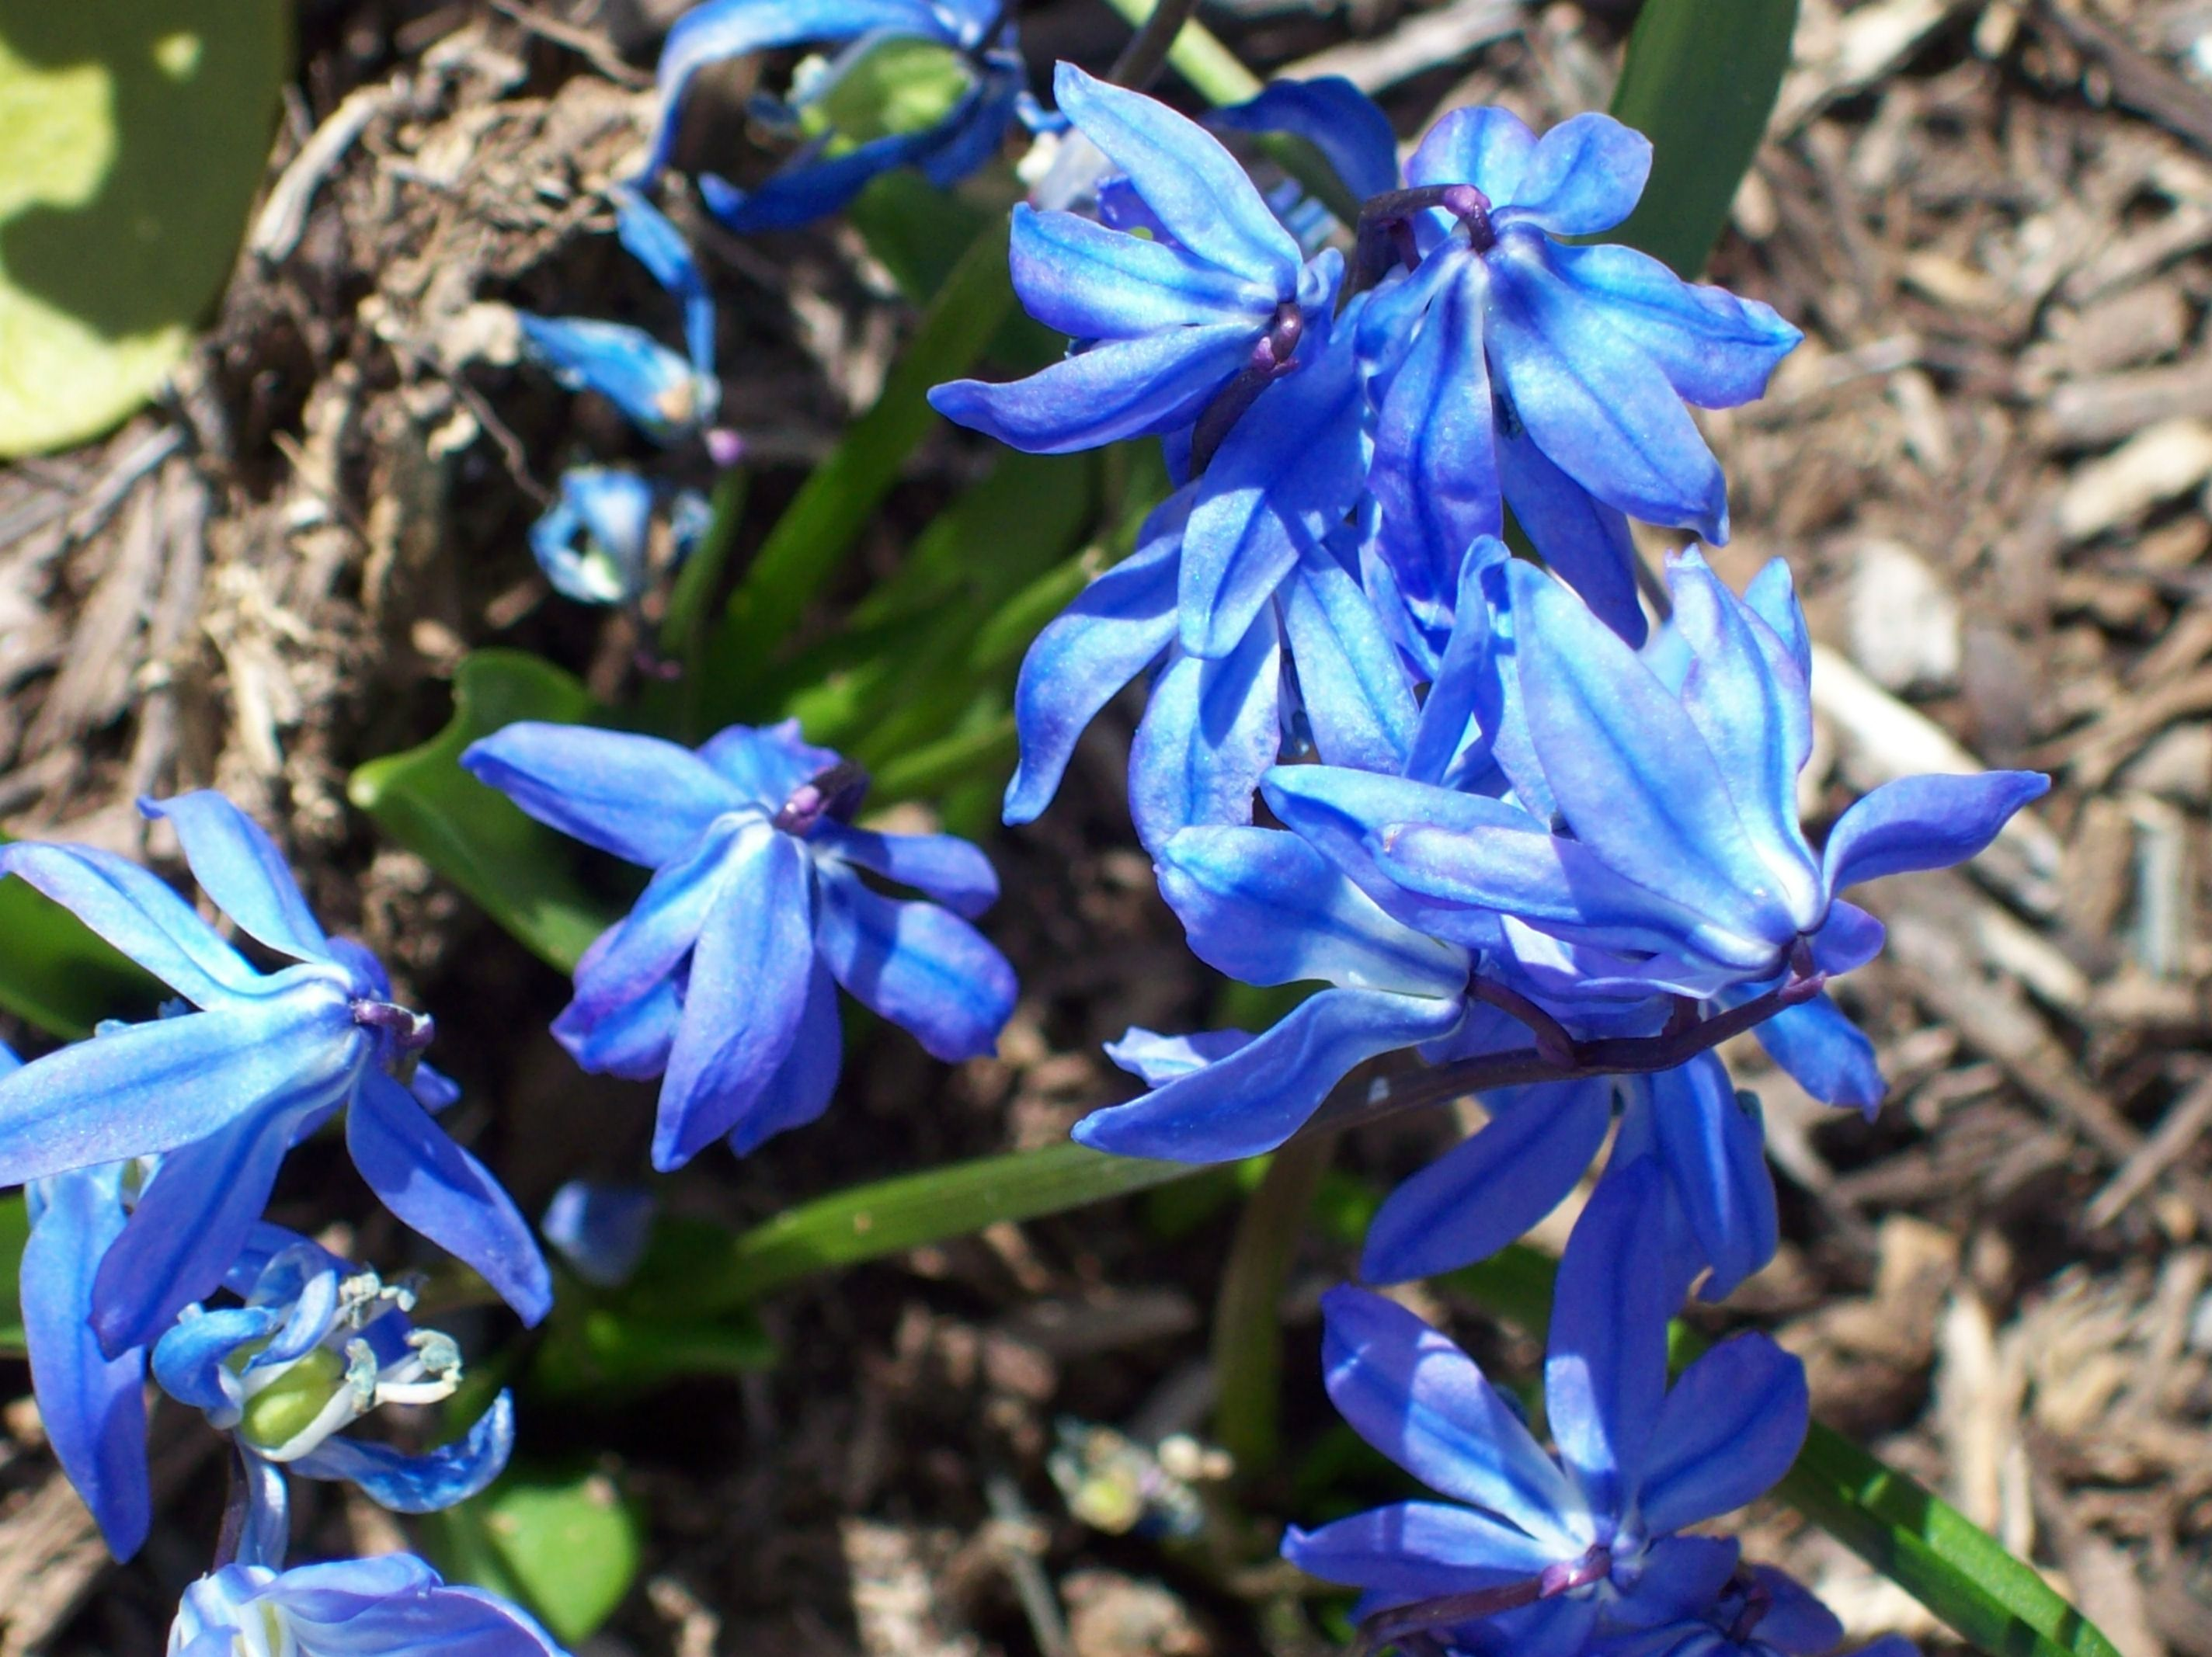 Love the blue shade of these flowers